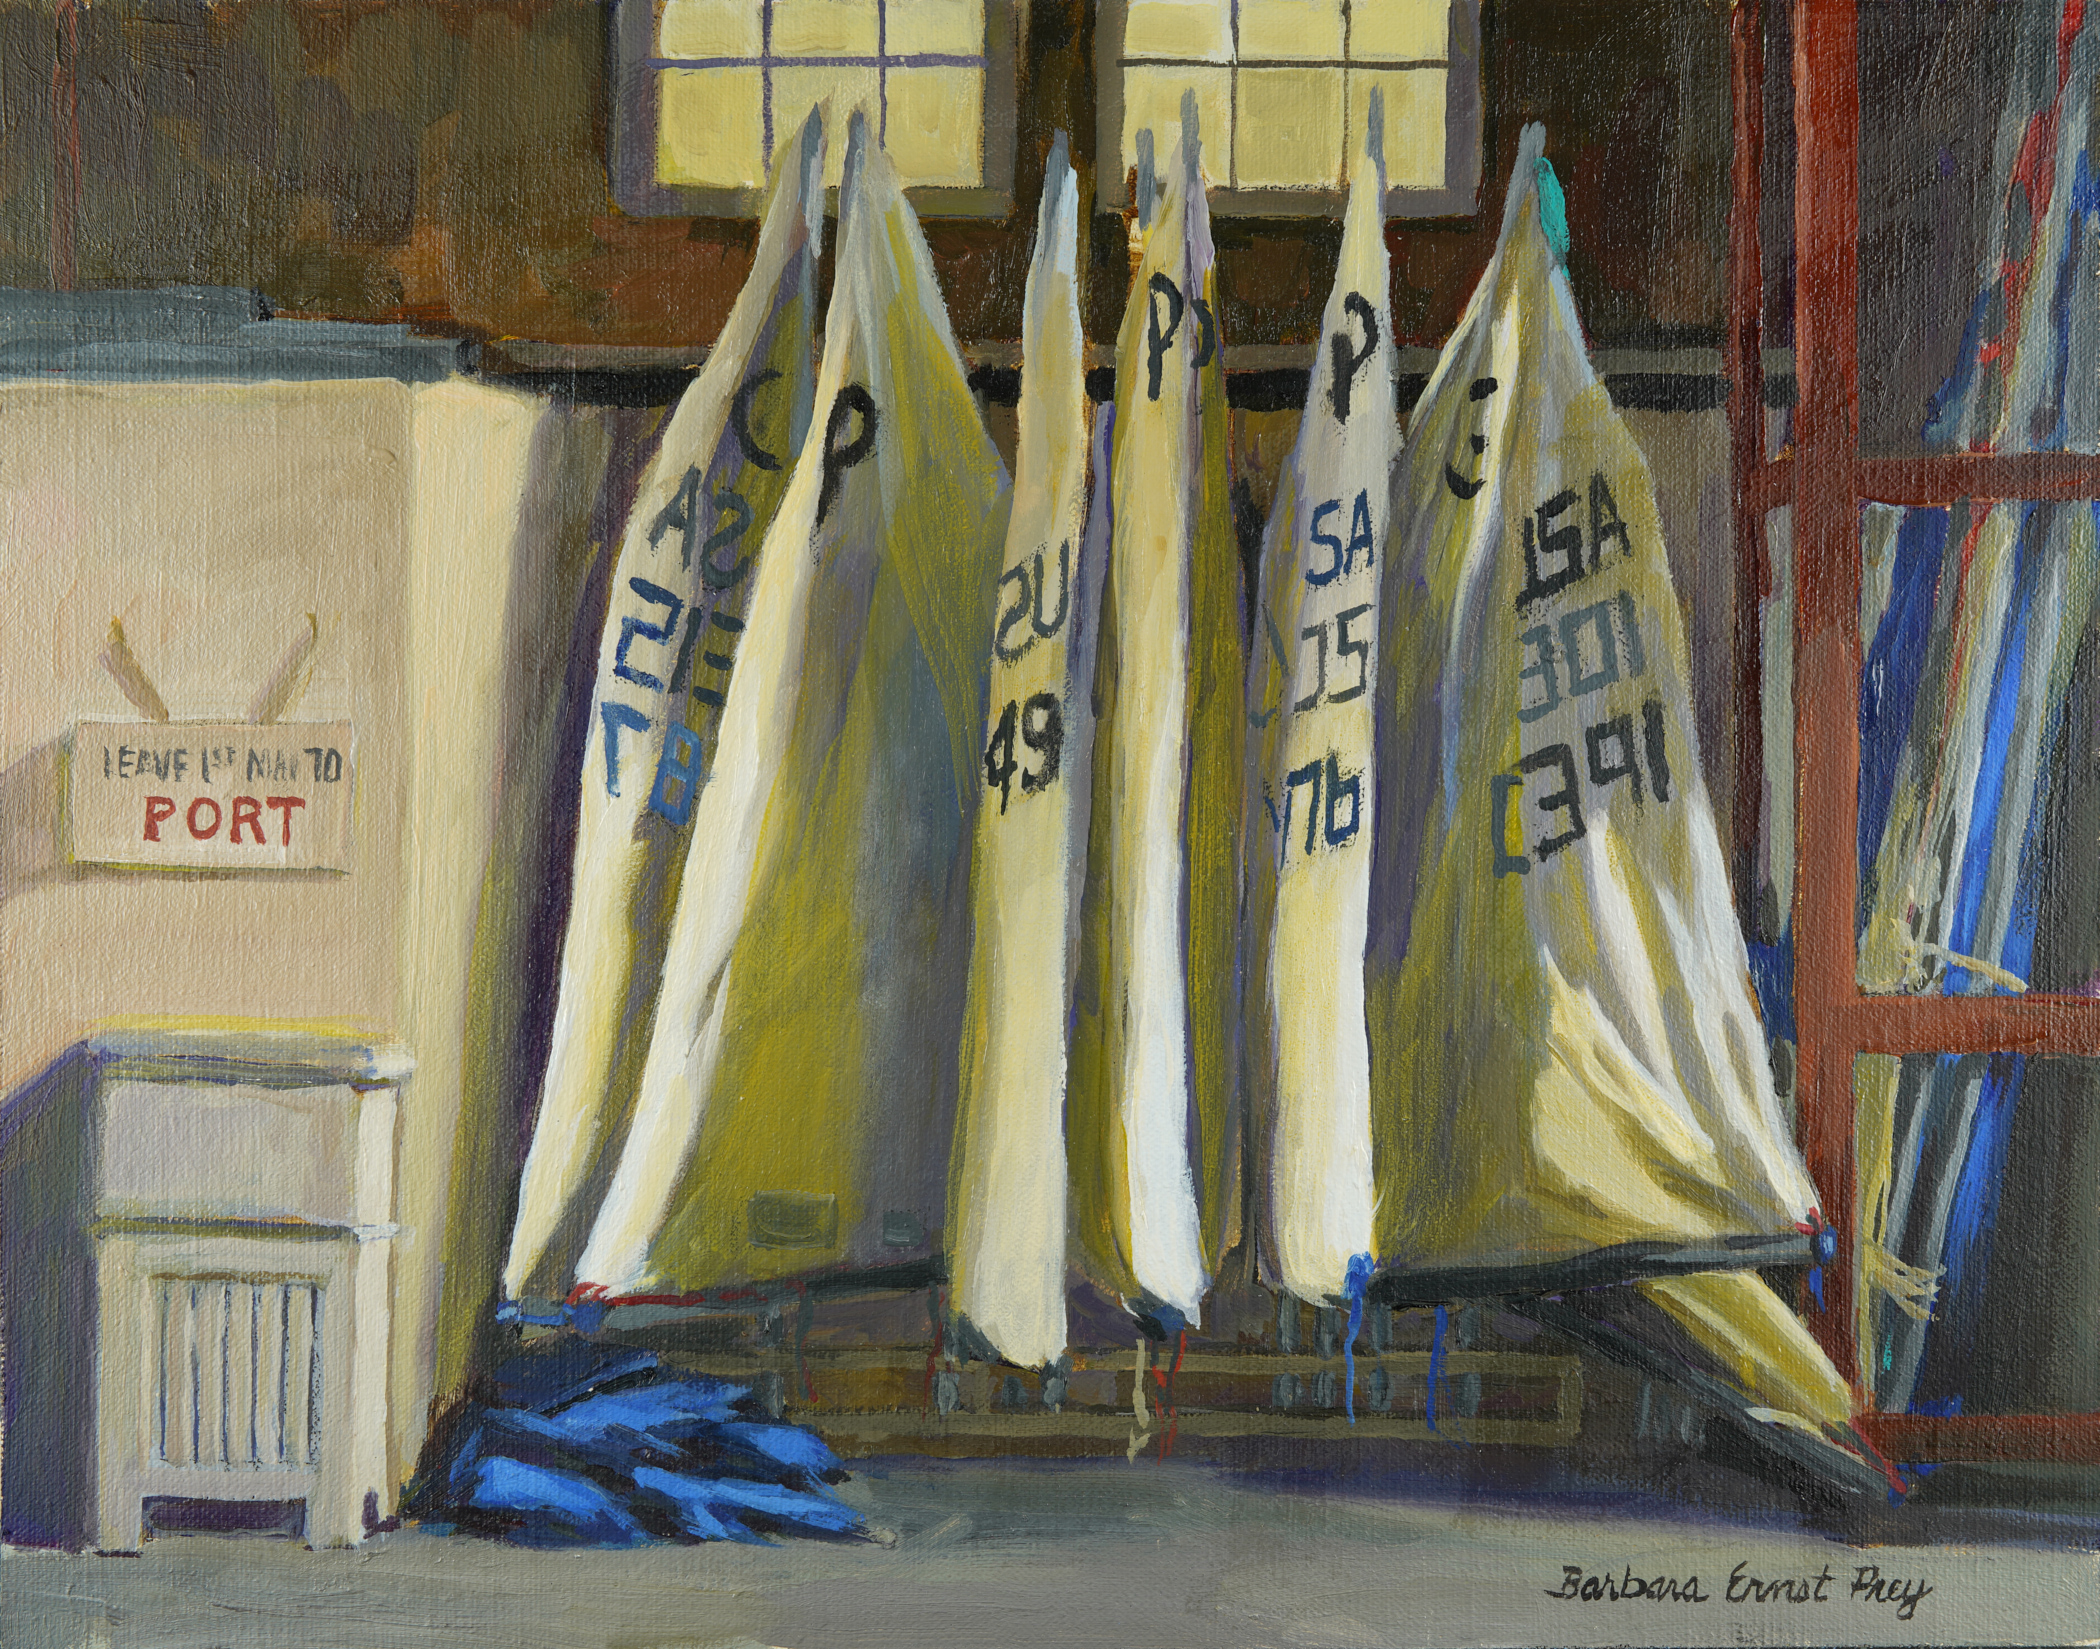 Sail Storage, 2018, Oil on panel, 11 x 14 inches